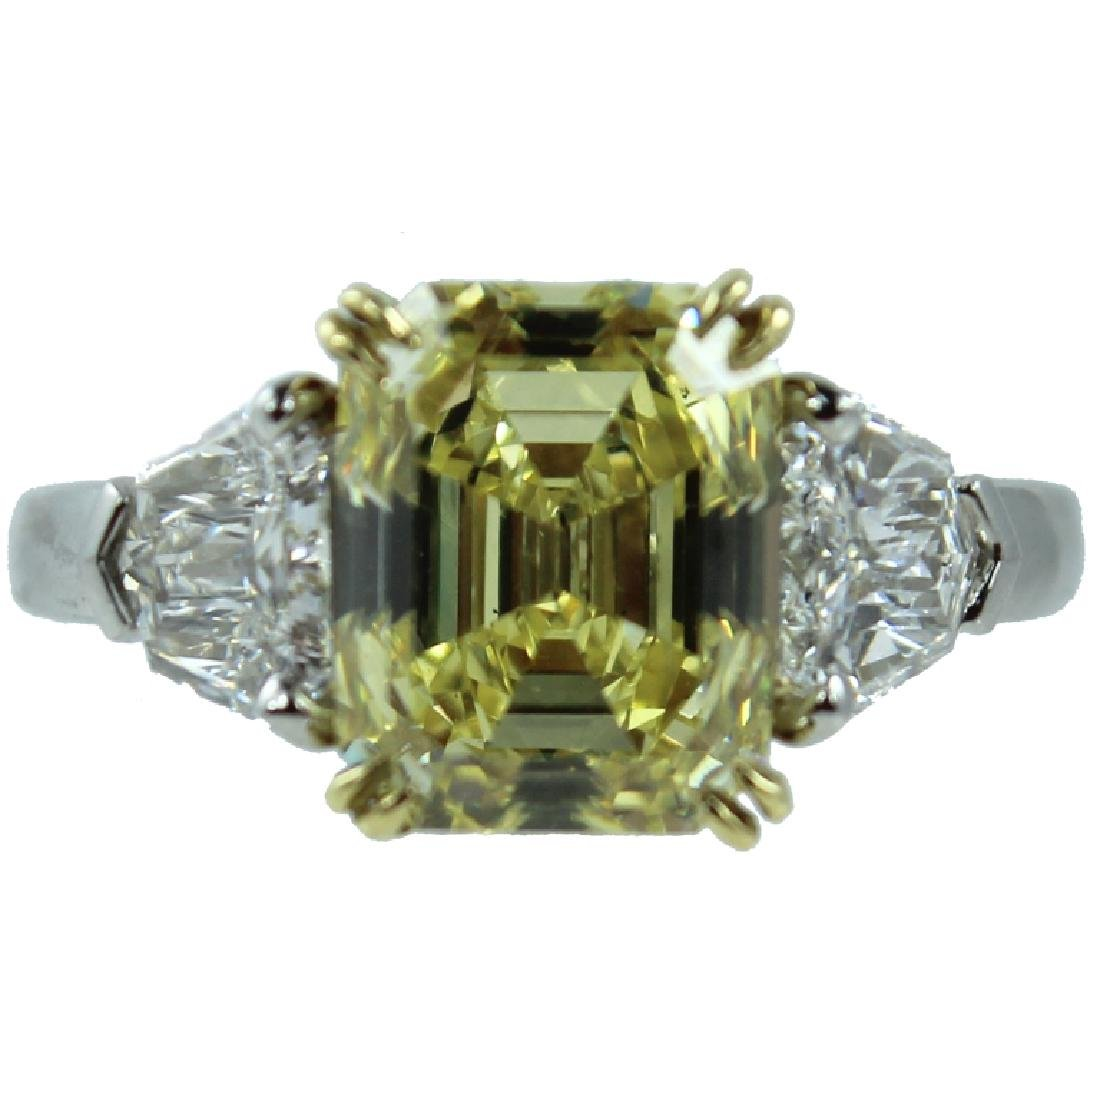 RARE. GIA Certified 3.76CT Fancy Intense Yellow.